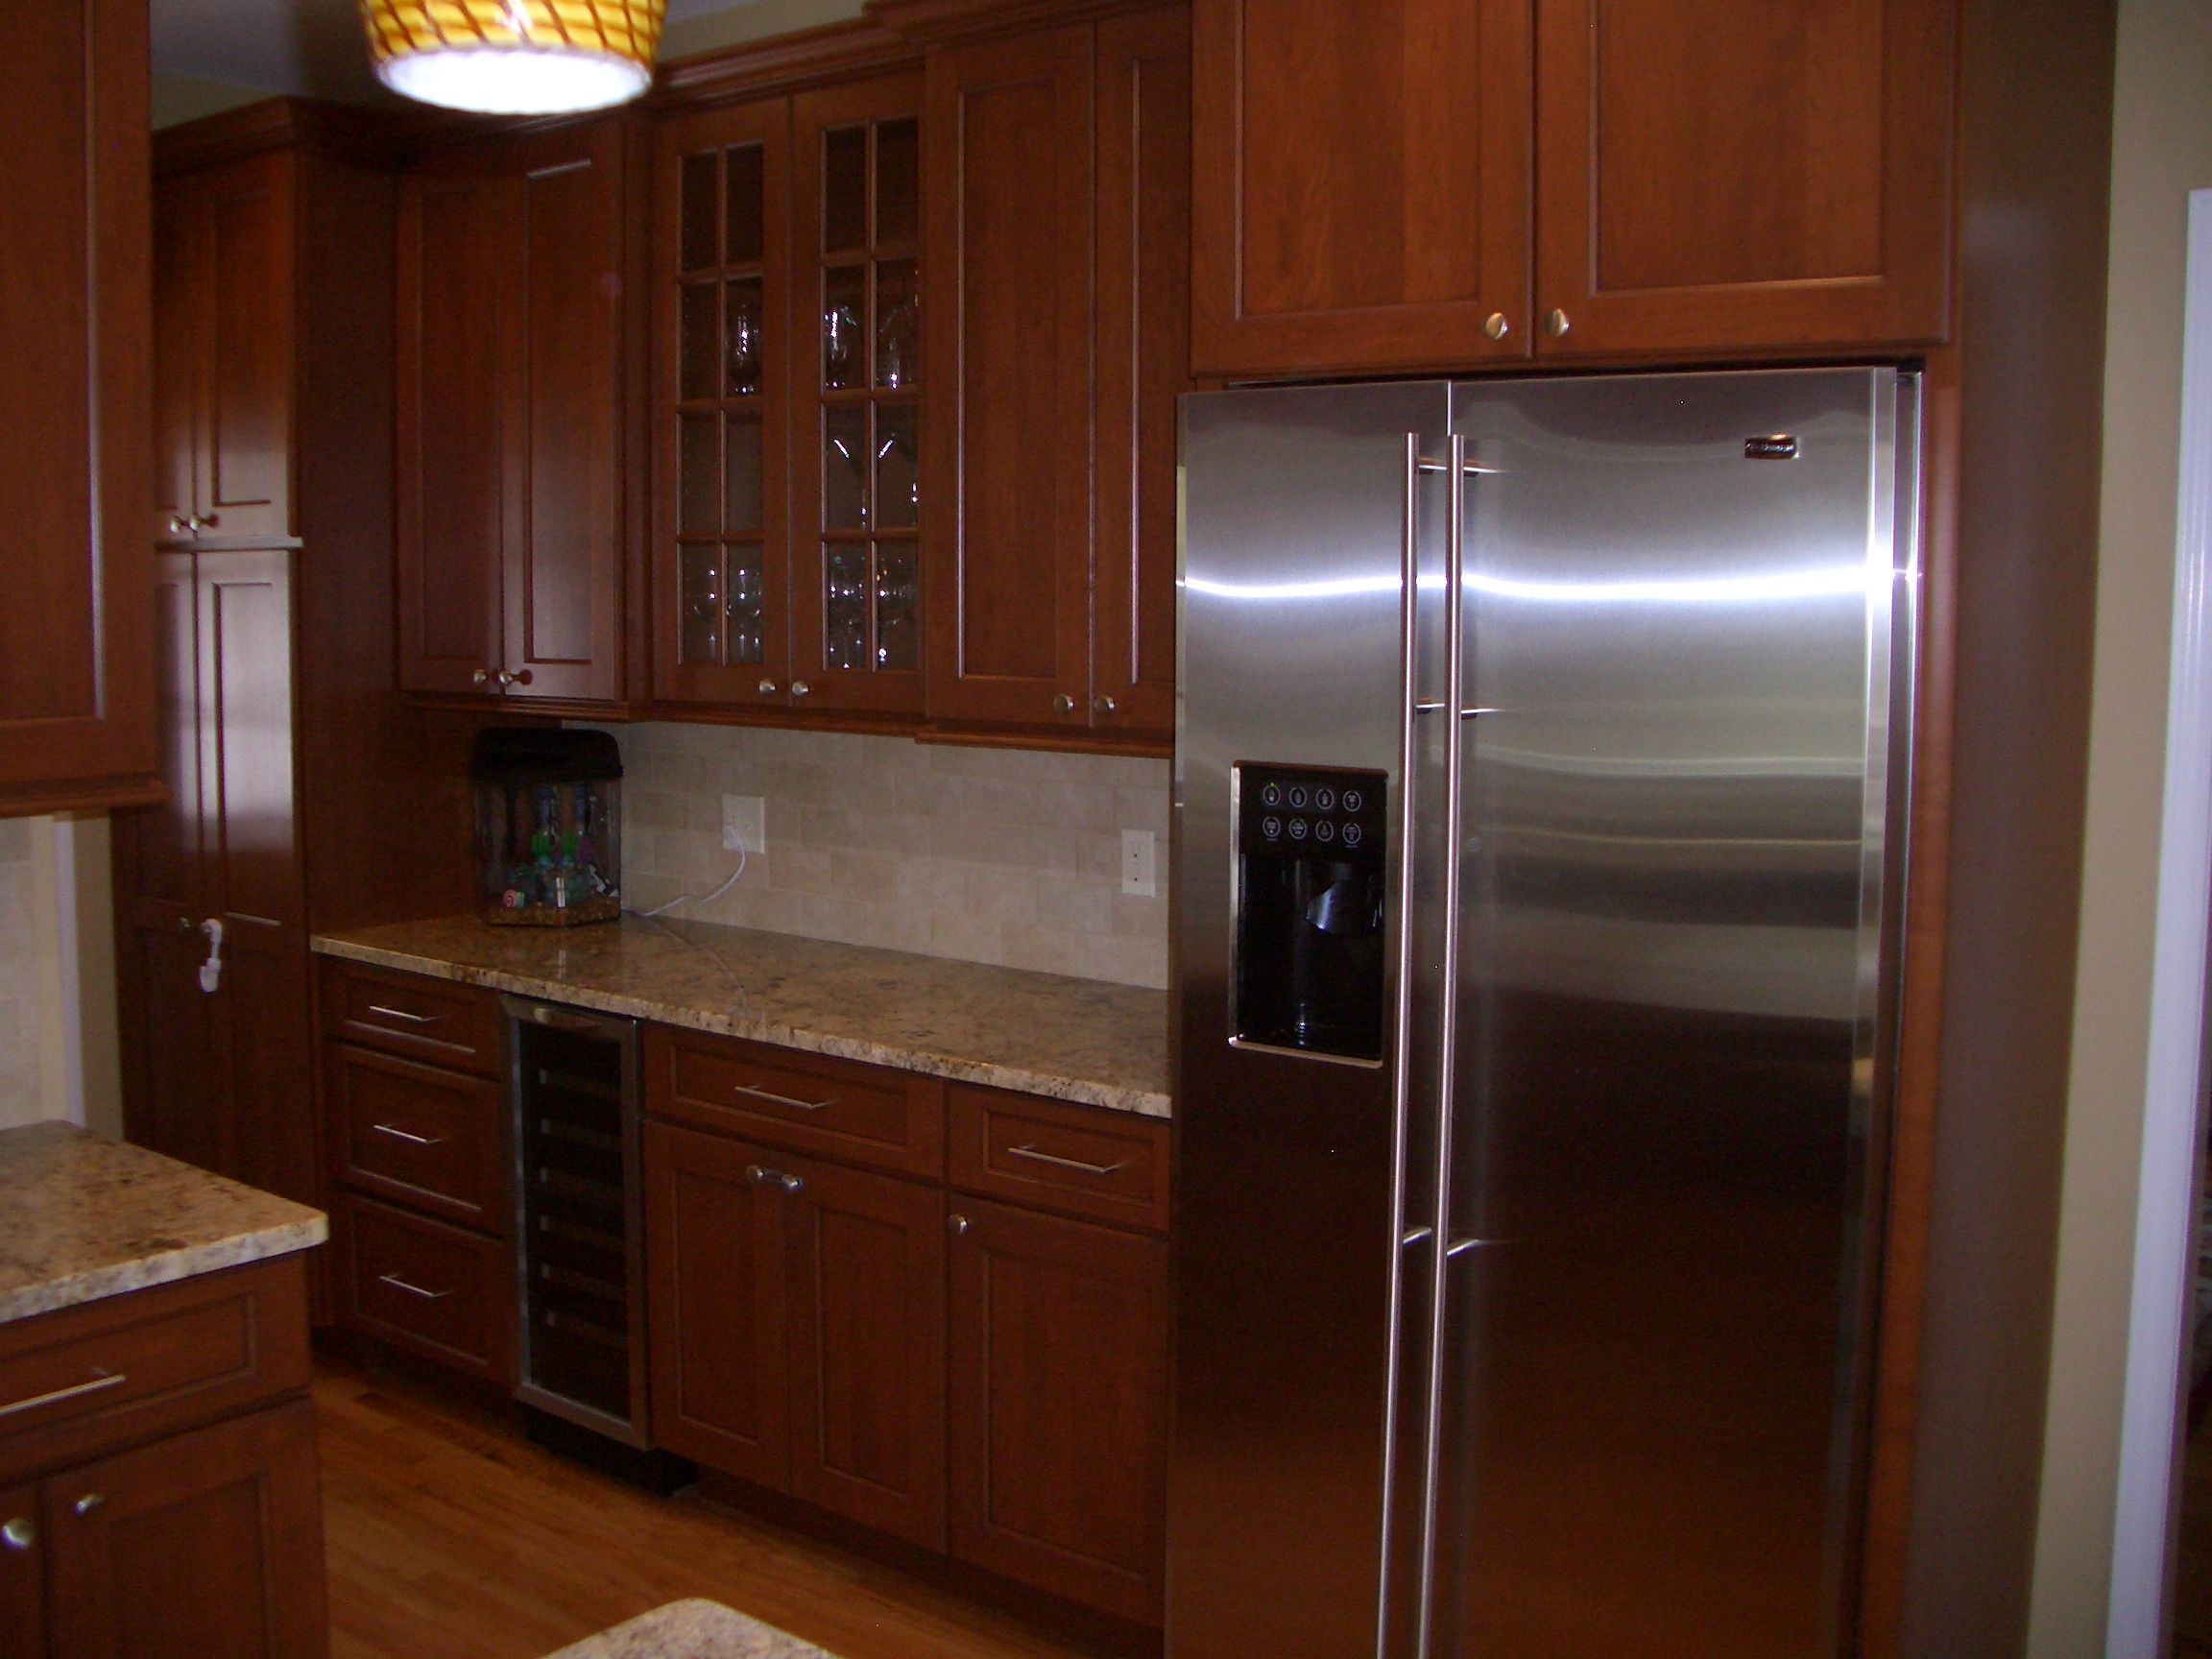 Majestic Kitchens And Bath Designer Roberto Leira. Cabinetry: Cabico In A  Cherry Wood With A Chestnut Brown Glaze   Golden Beach Granite Counter Tops.